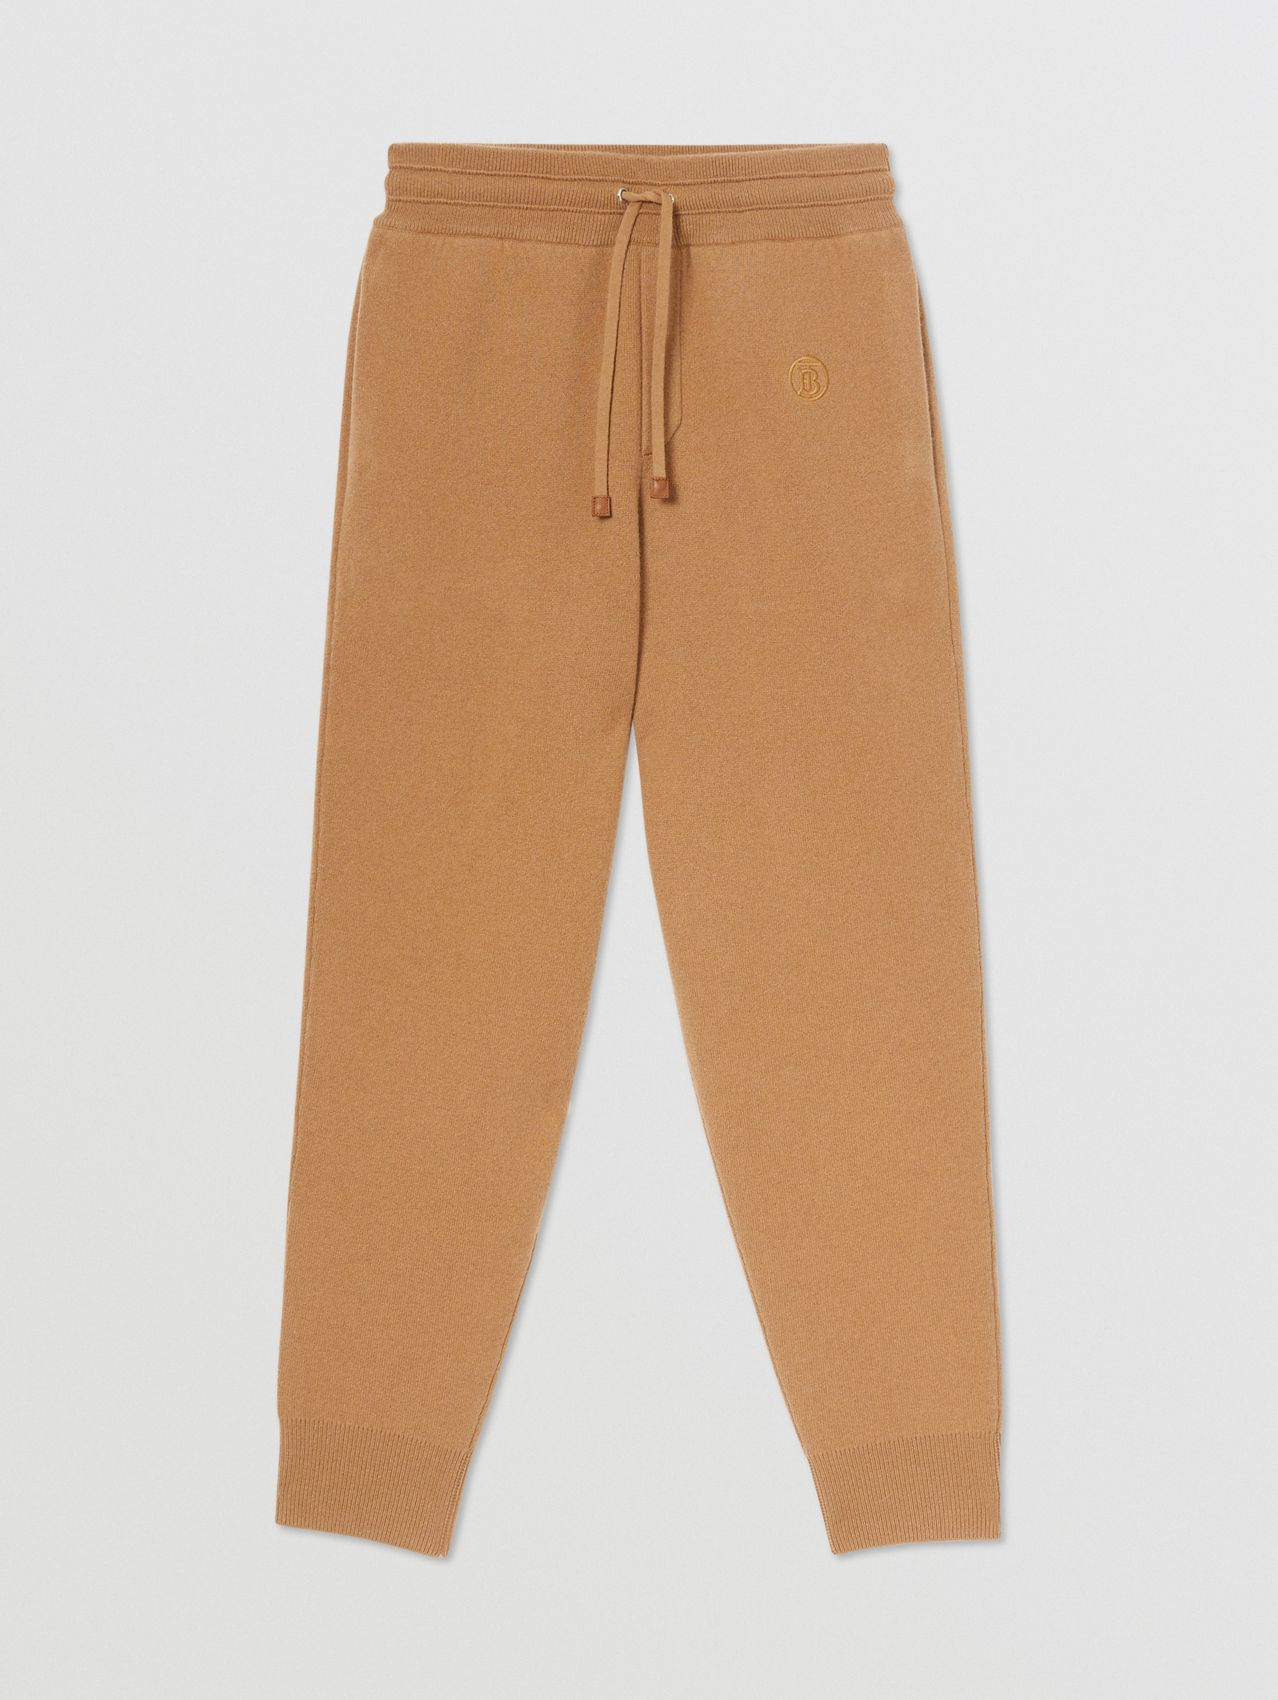 Monogram Motif Cashmere Blend Jogging Pants in Camel